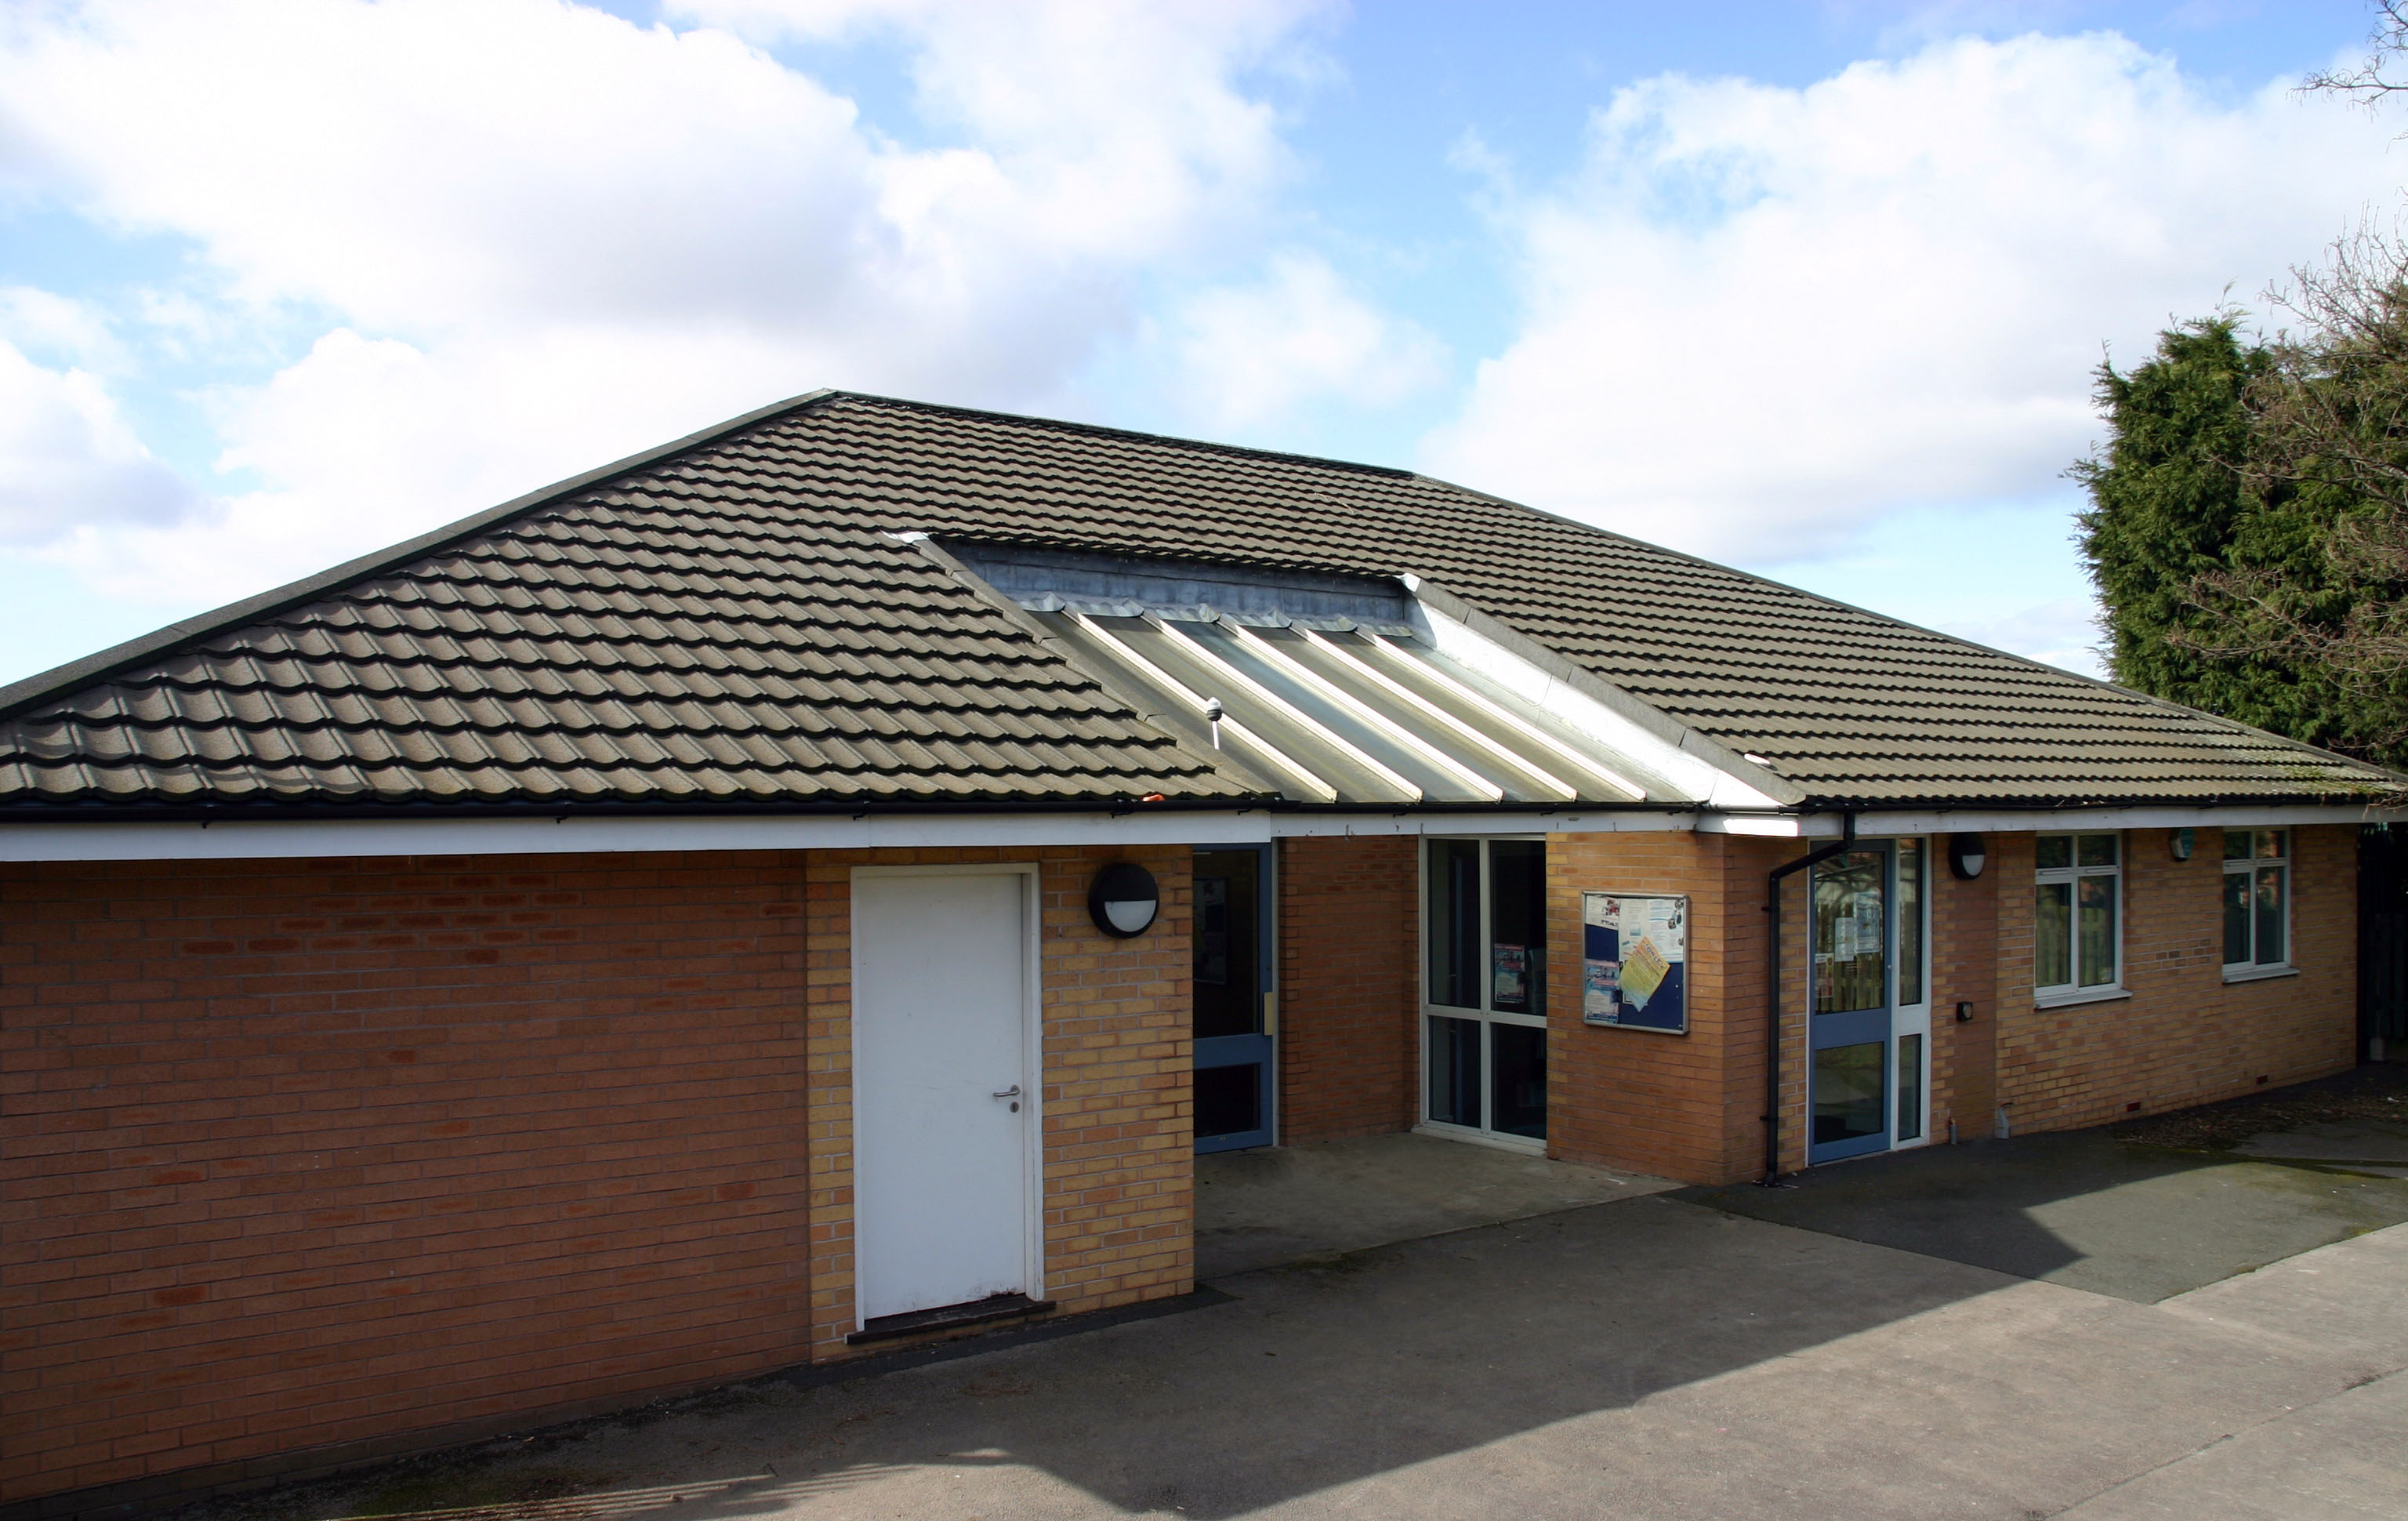 brickhouse community centre